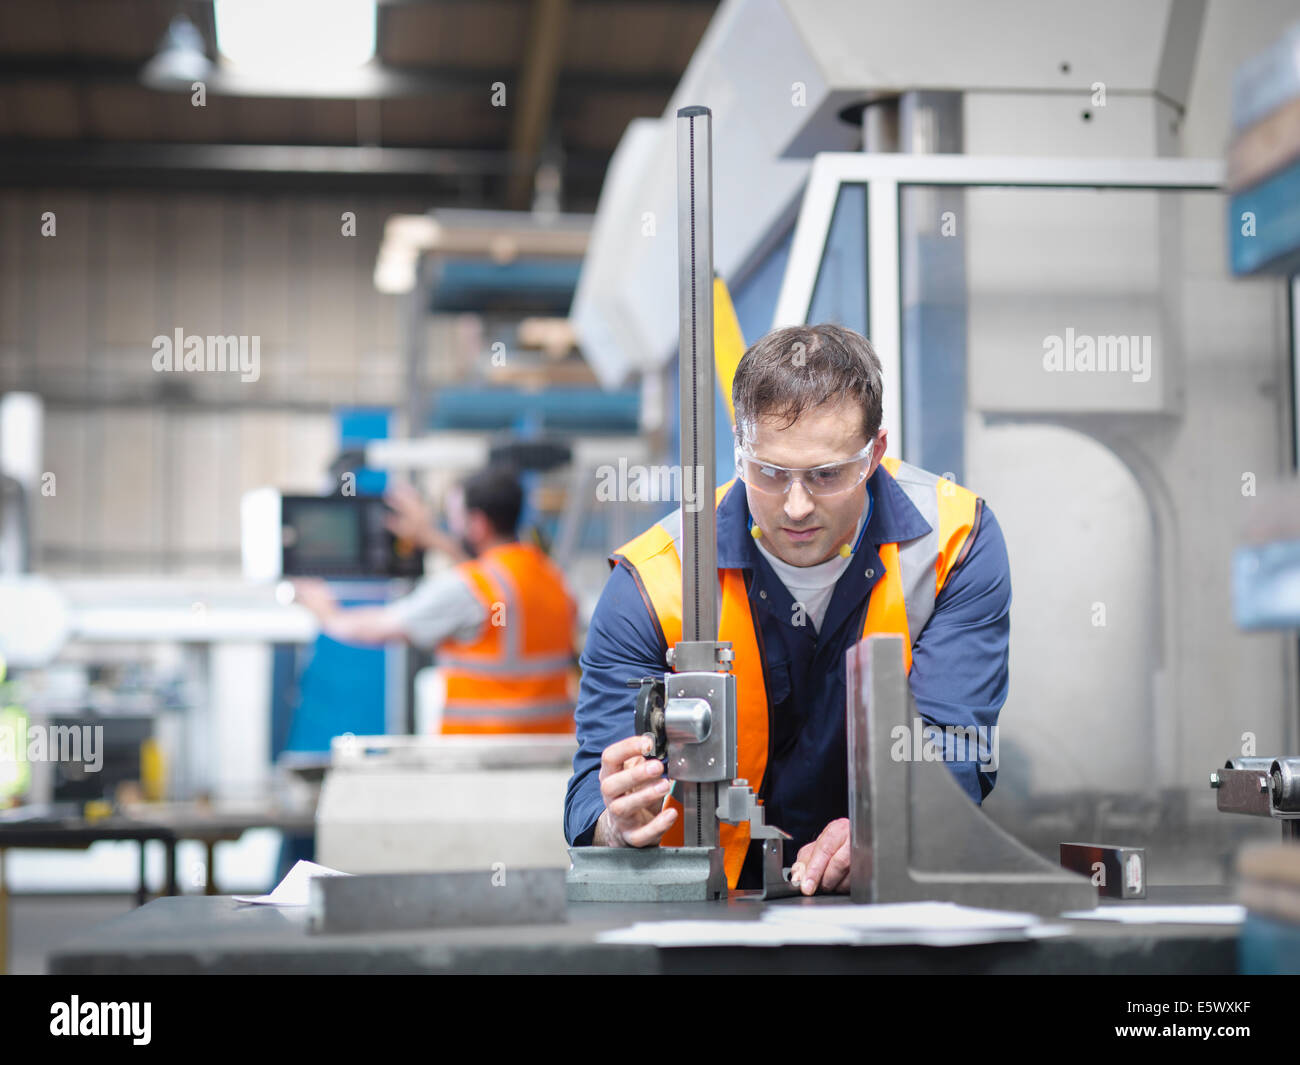 Worker measuring parts in sheet metal factory - Stock Image